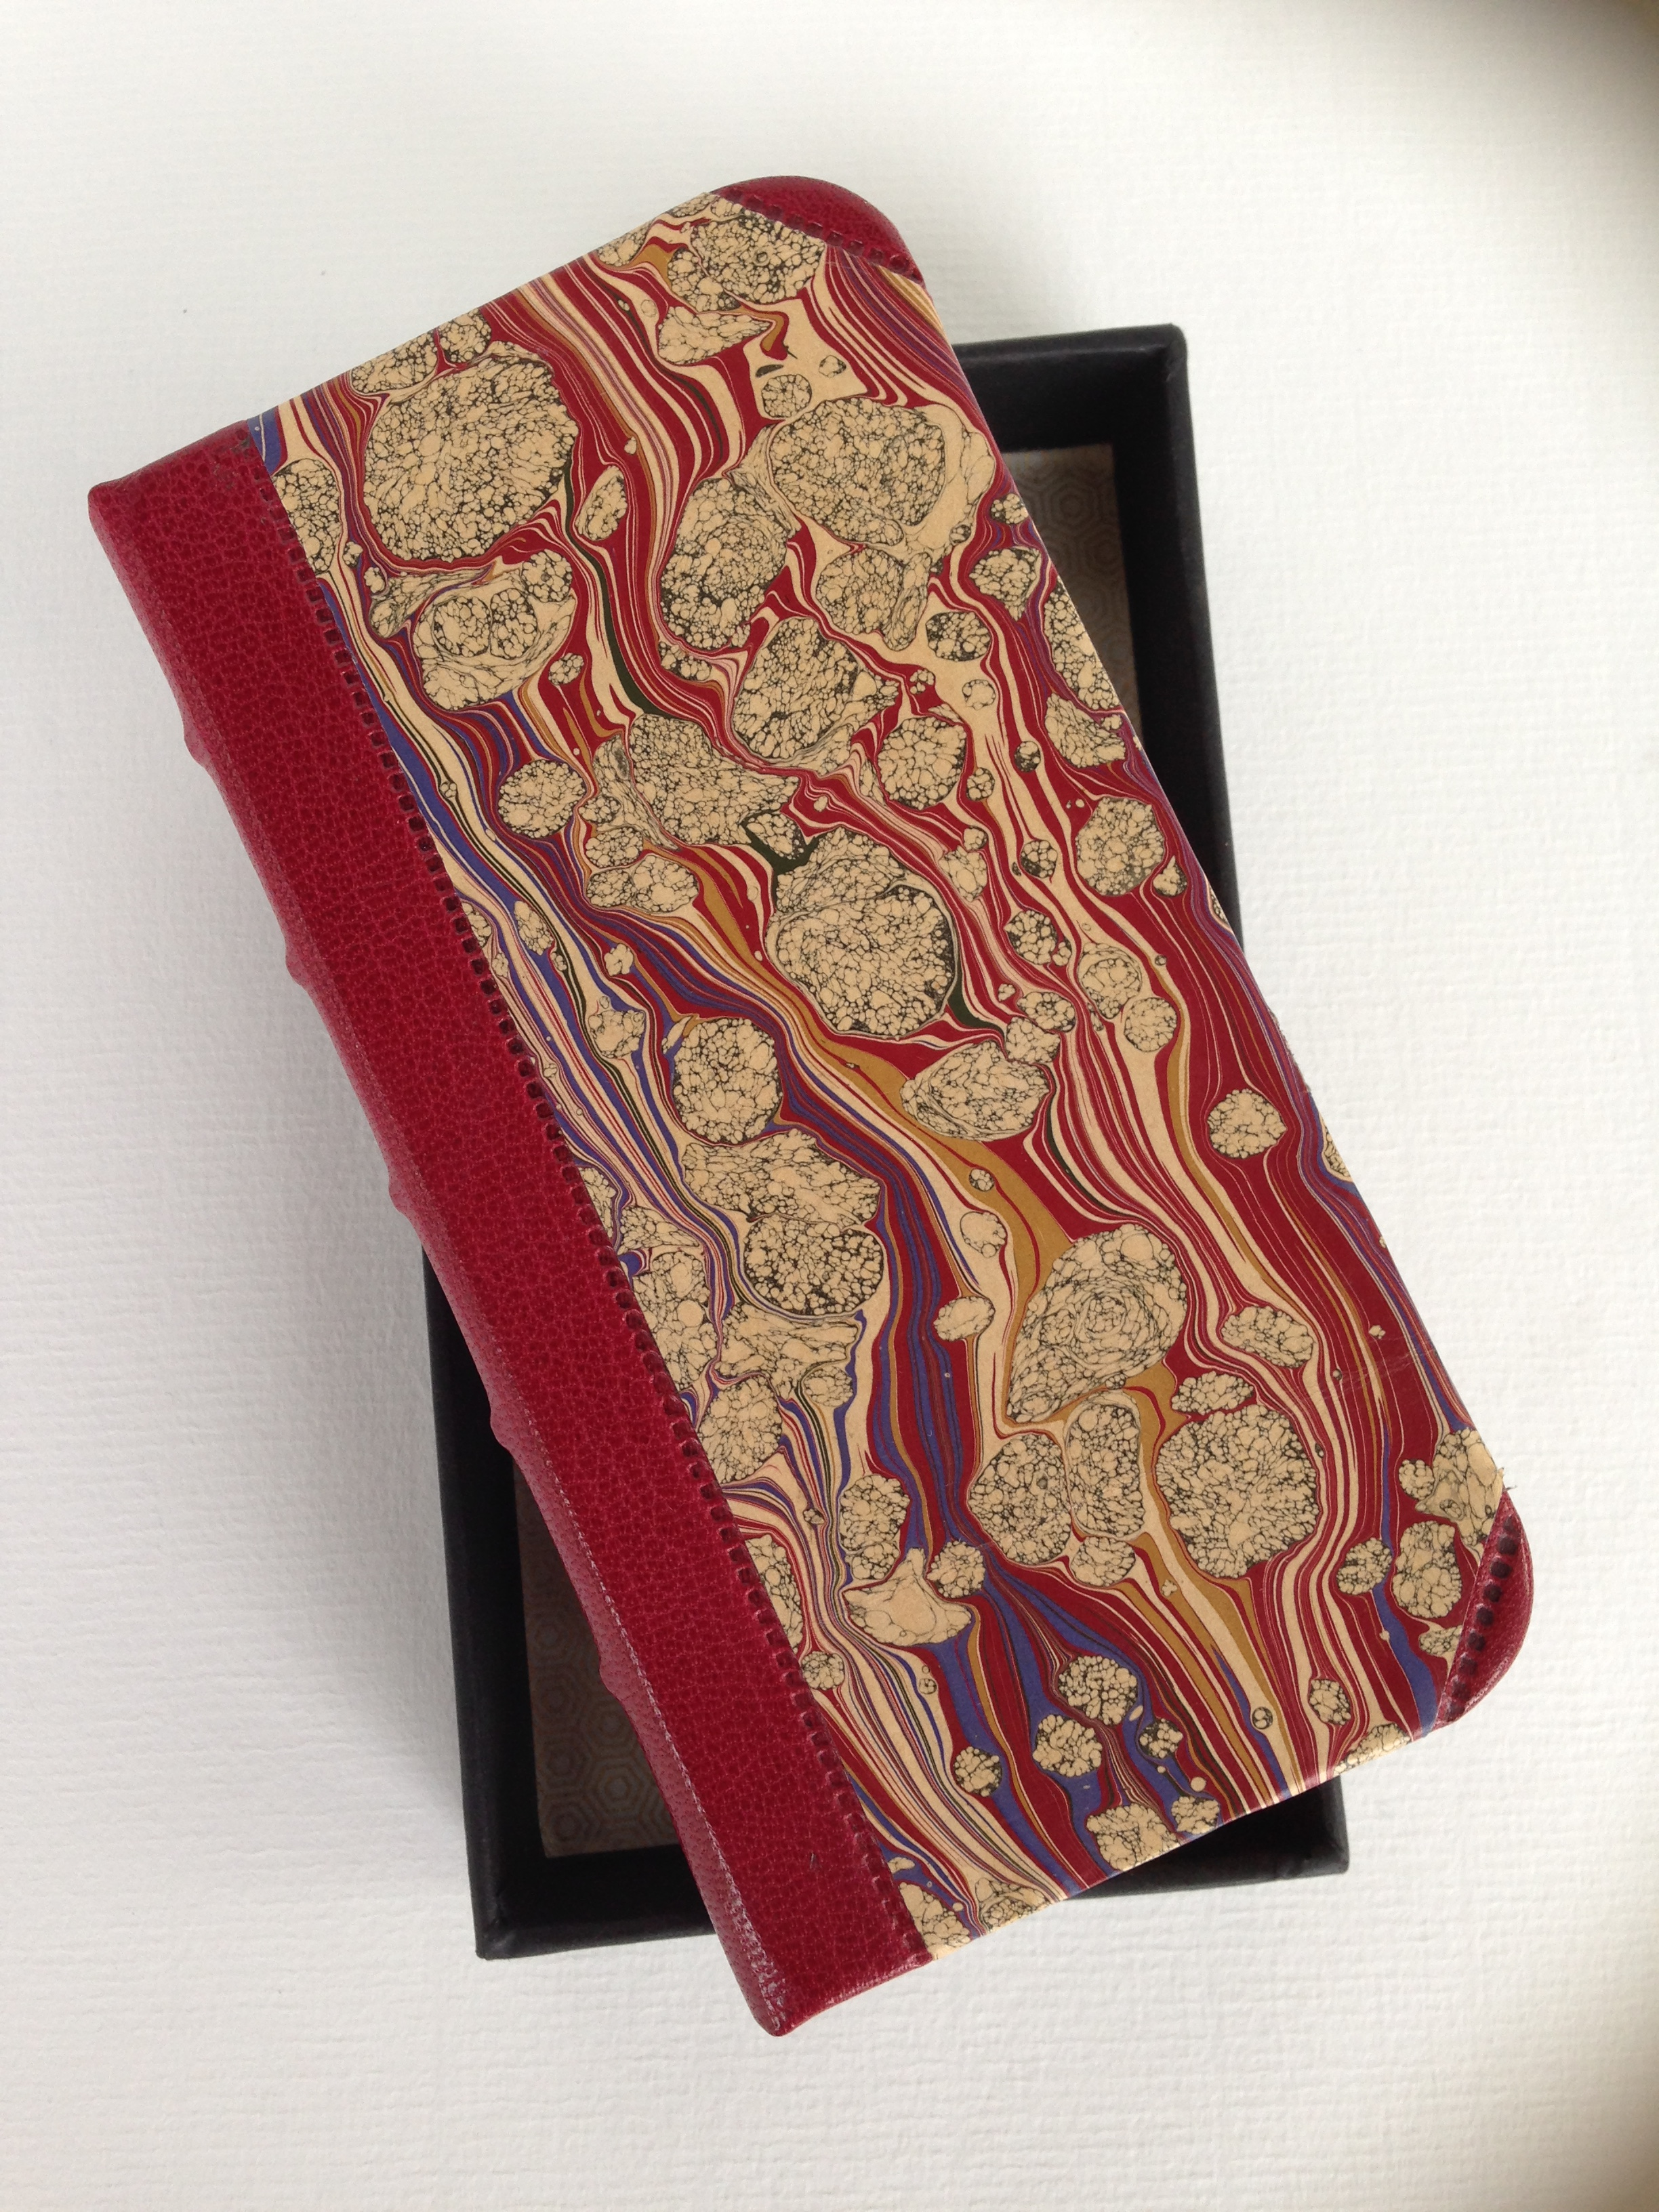 Goat Skin Hand -Marbled iPhone case